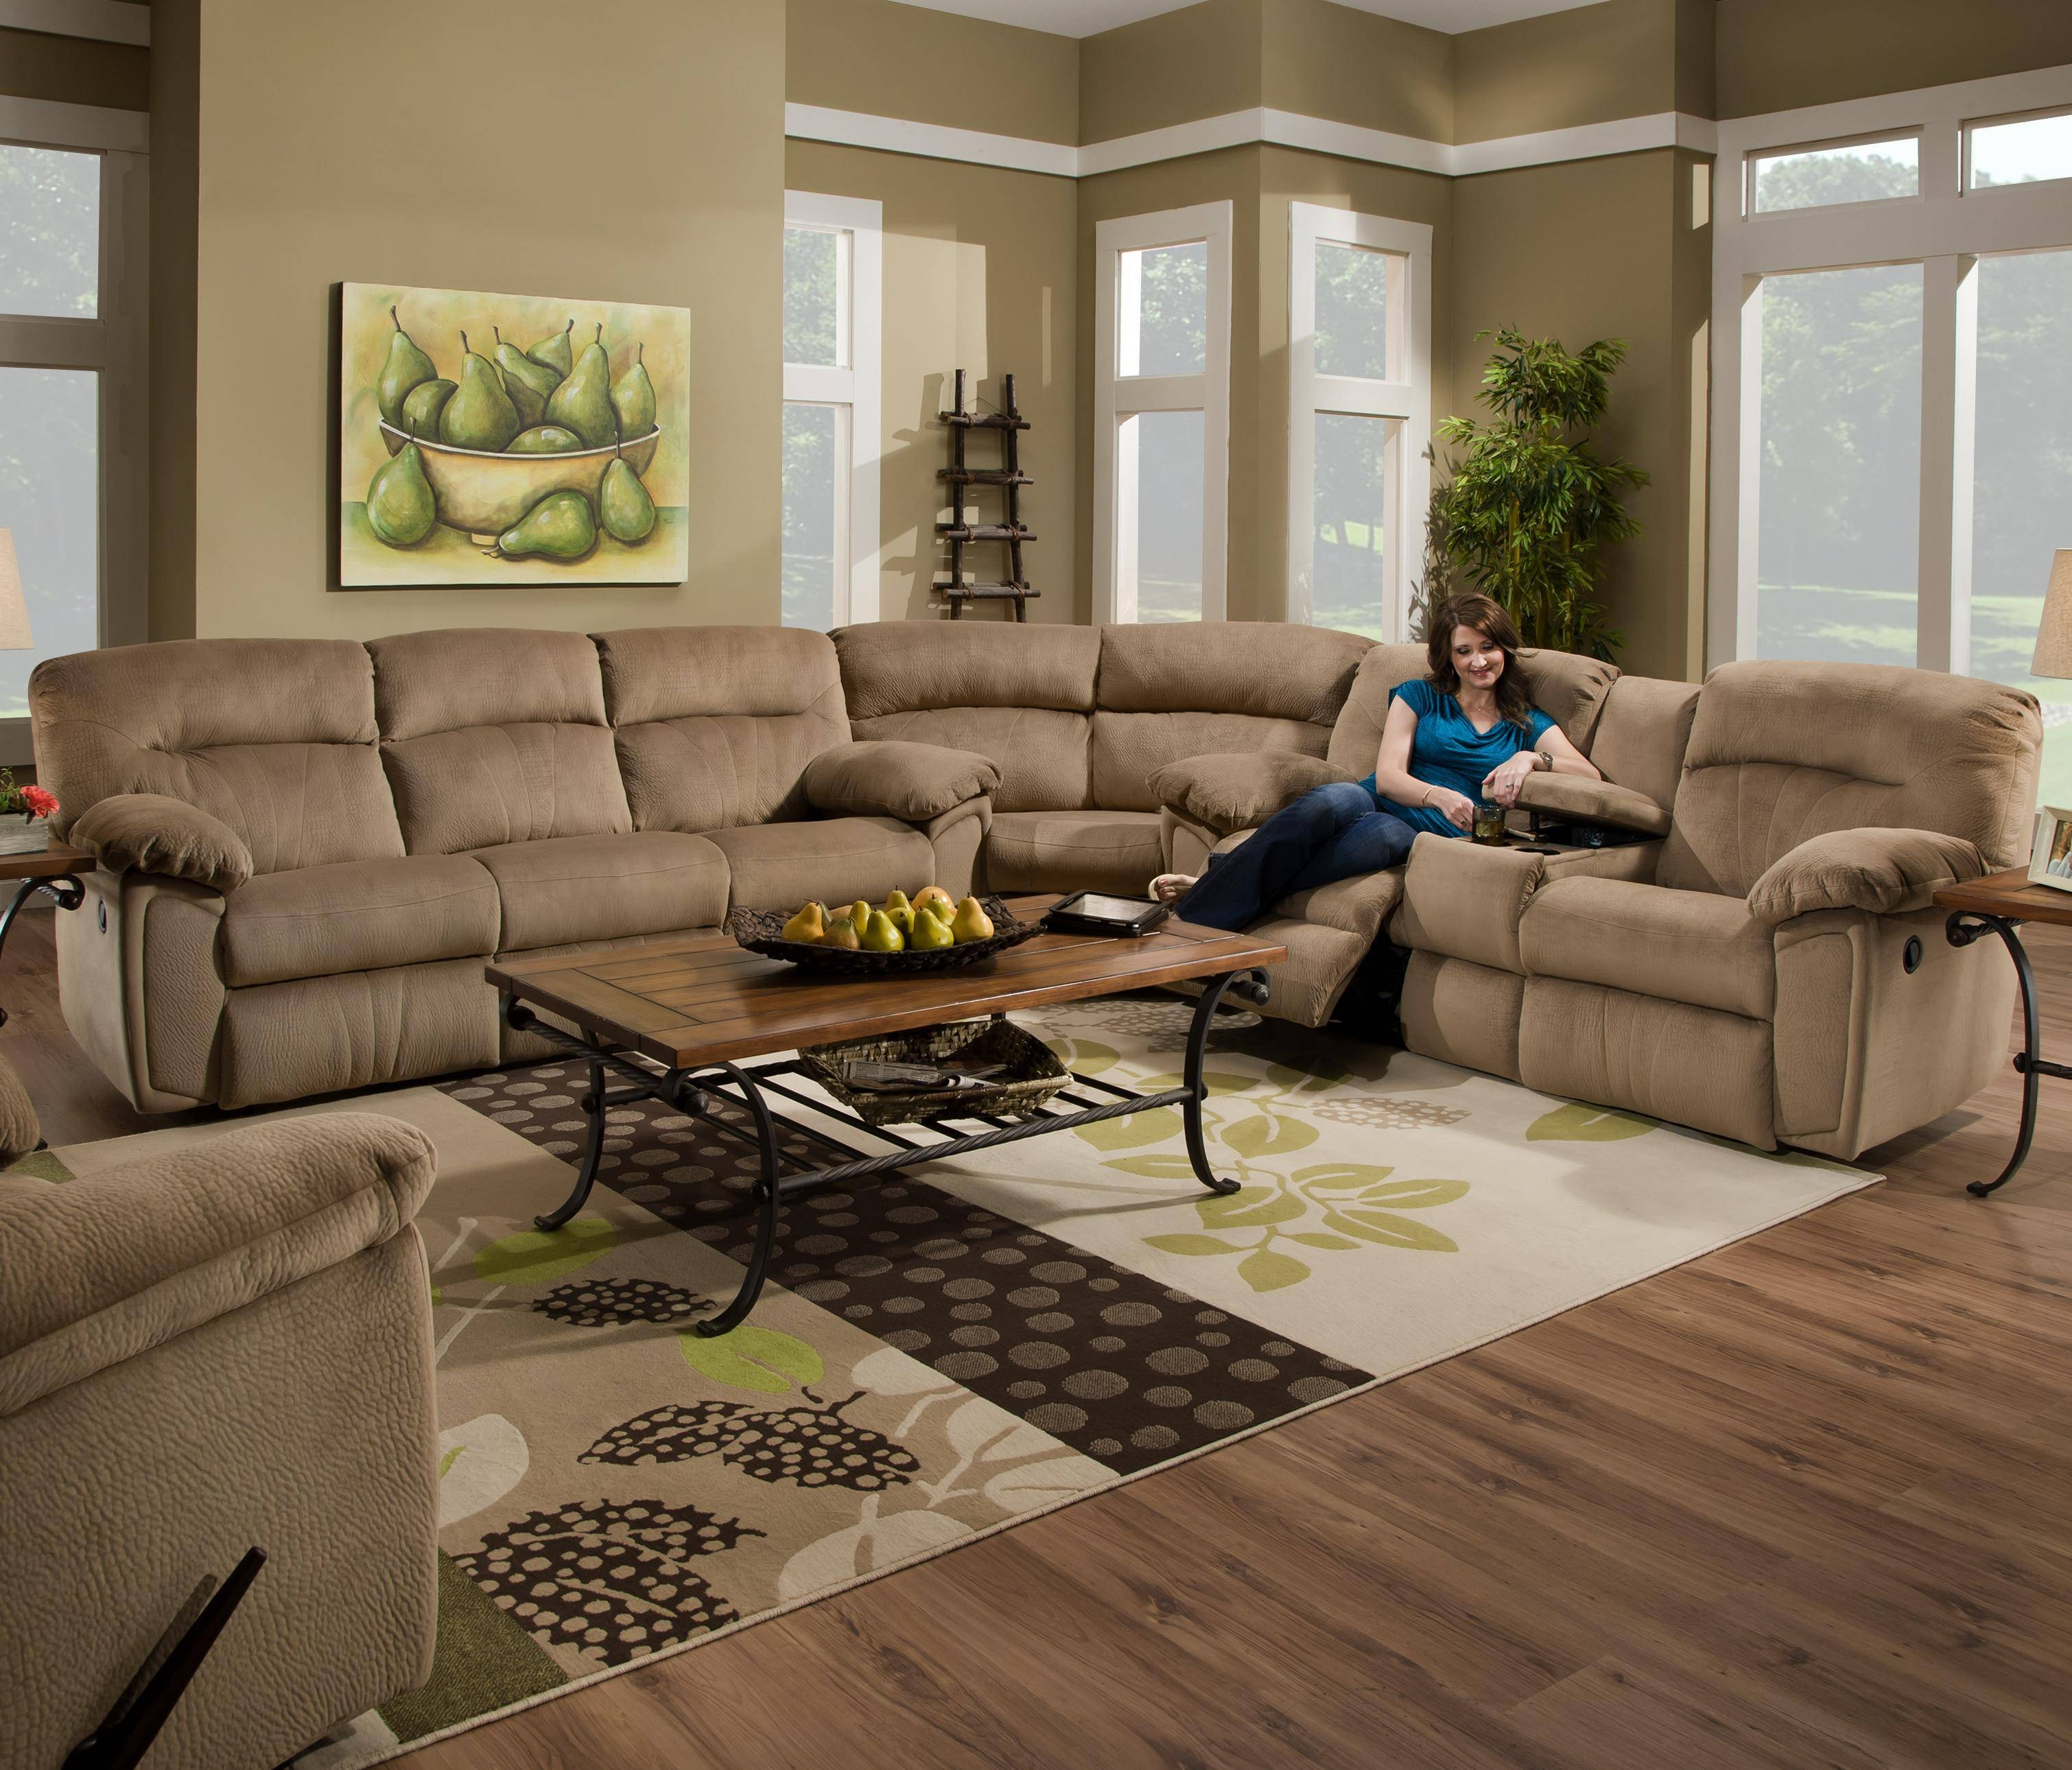 Sectional Sofa With Recliner And Cup Holders | Tehranmix Decoration within Sectional Sofa Recliners (Image 22 of 30)